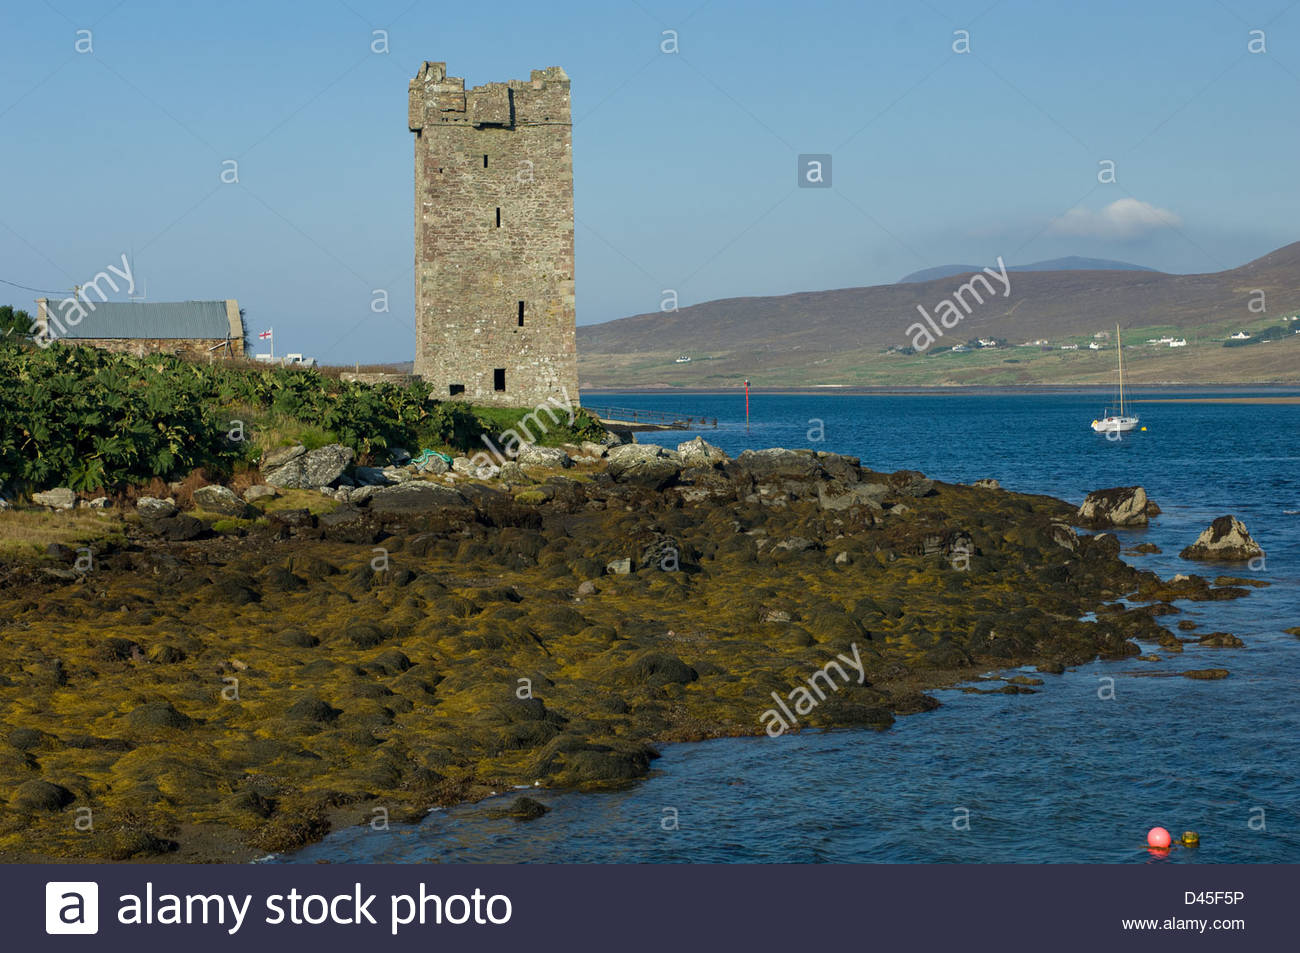 Grace O'Malley's Castle Achill Island, Grace O'Malley's Tower (Kildavnet Castle) a 16th century tower on ...